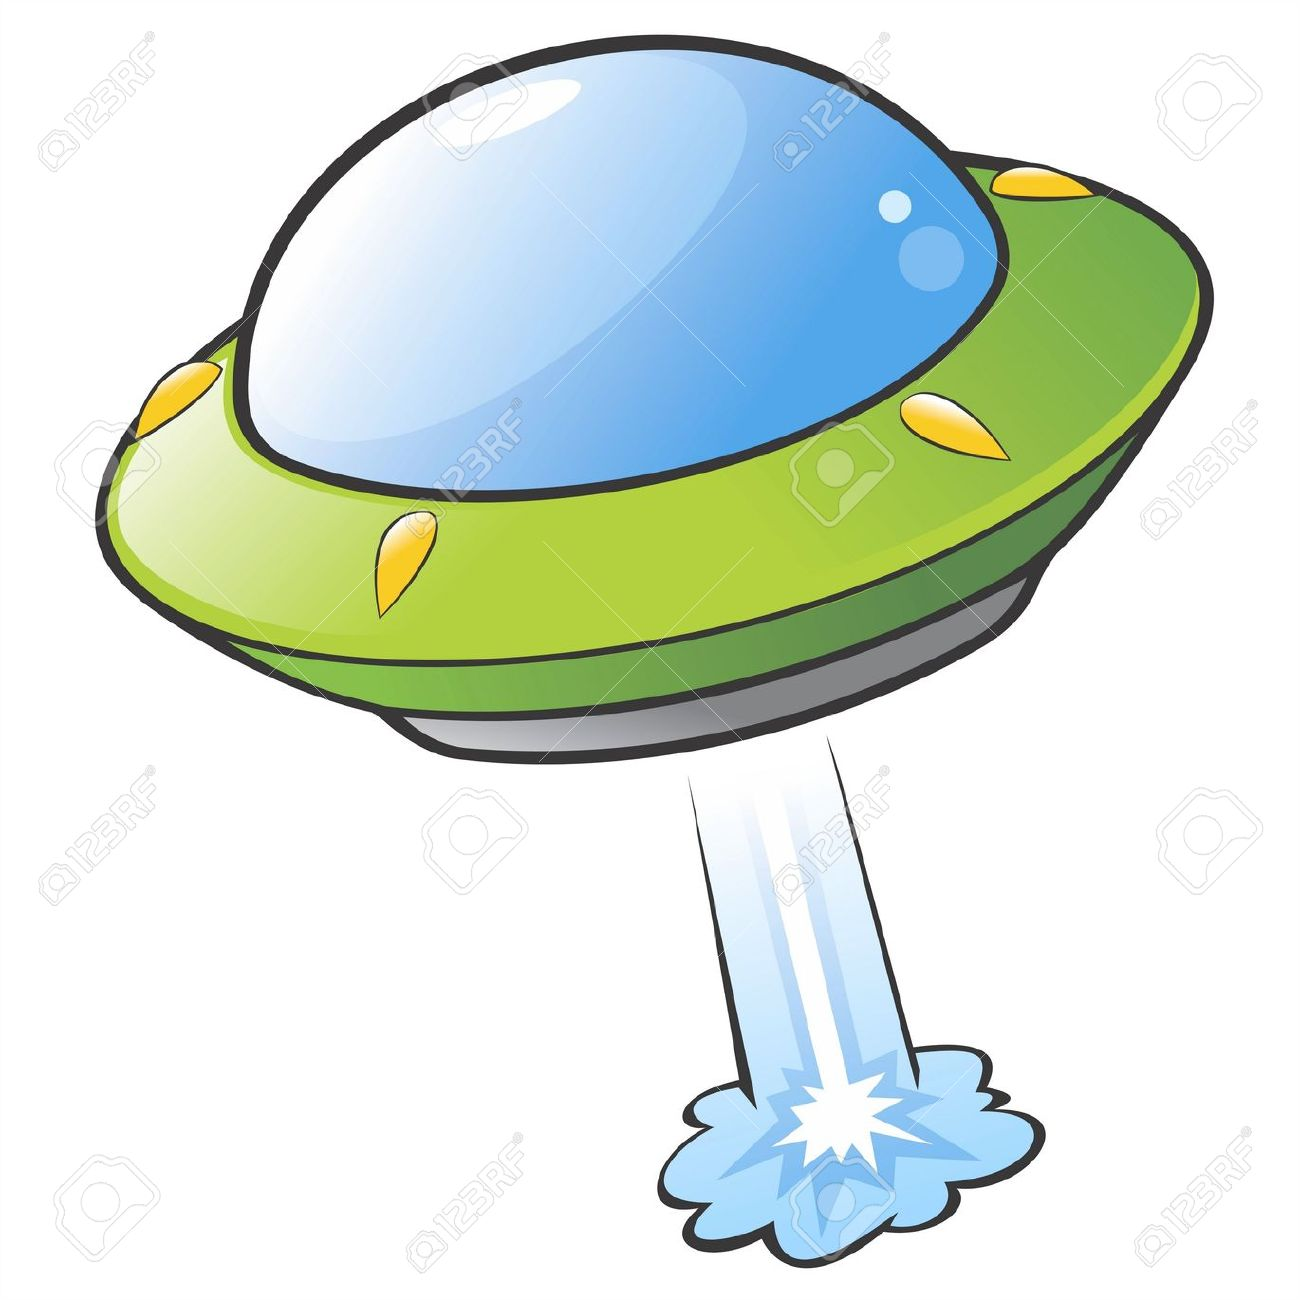 Illustration Of A Cartoon Flying Saucer Royalty Free Cliparts.